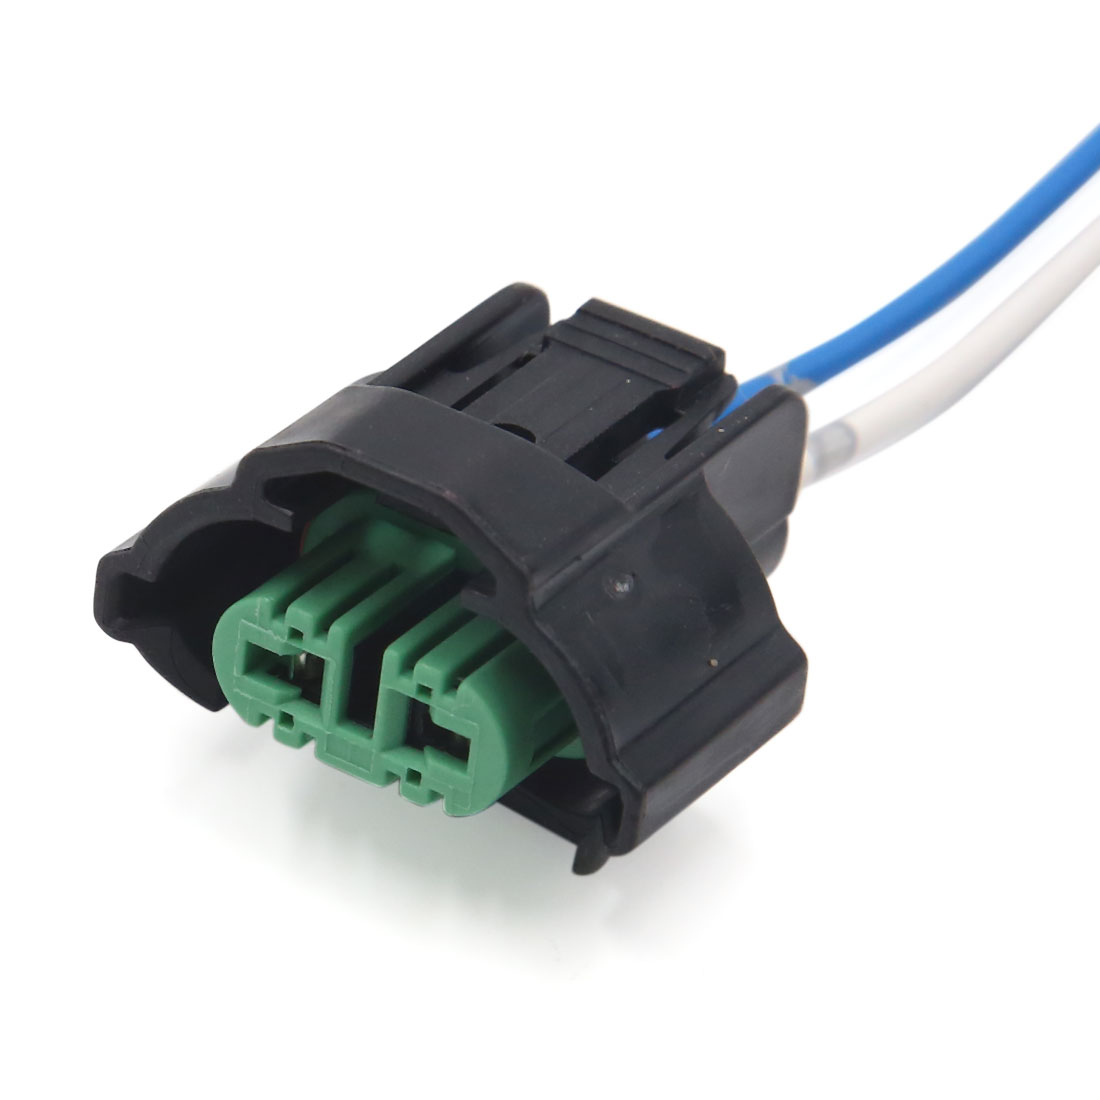 hight resolution of h11 bulb 2 wire car driving light headlamp wired harness socket connector